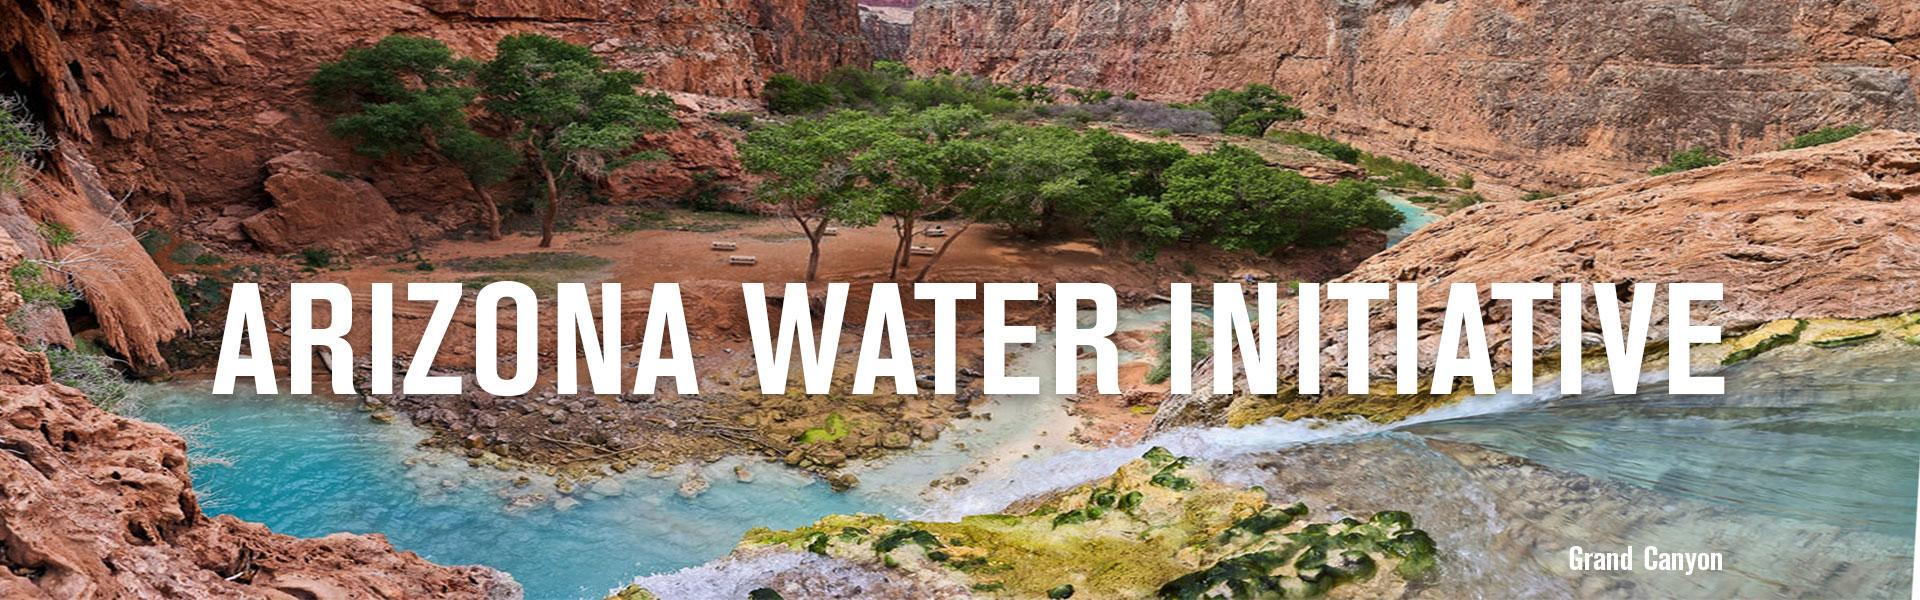 AZ Water Initiative banner image